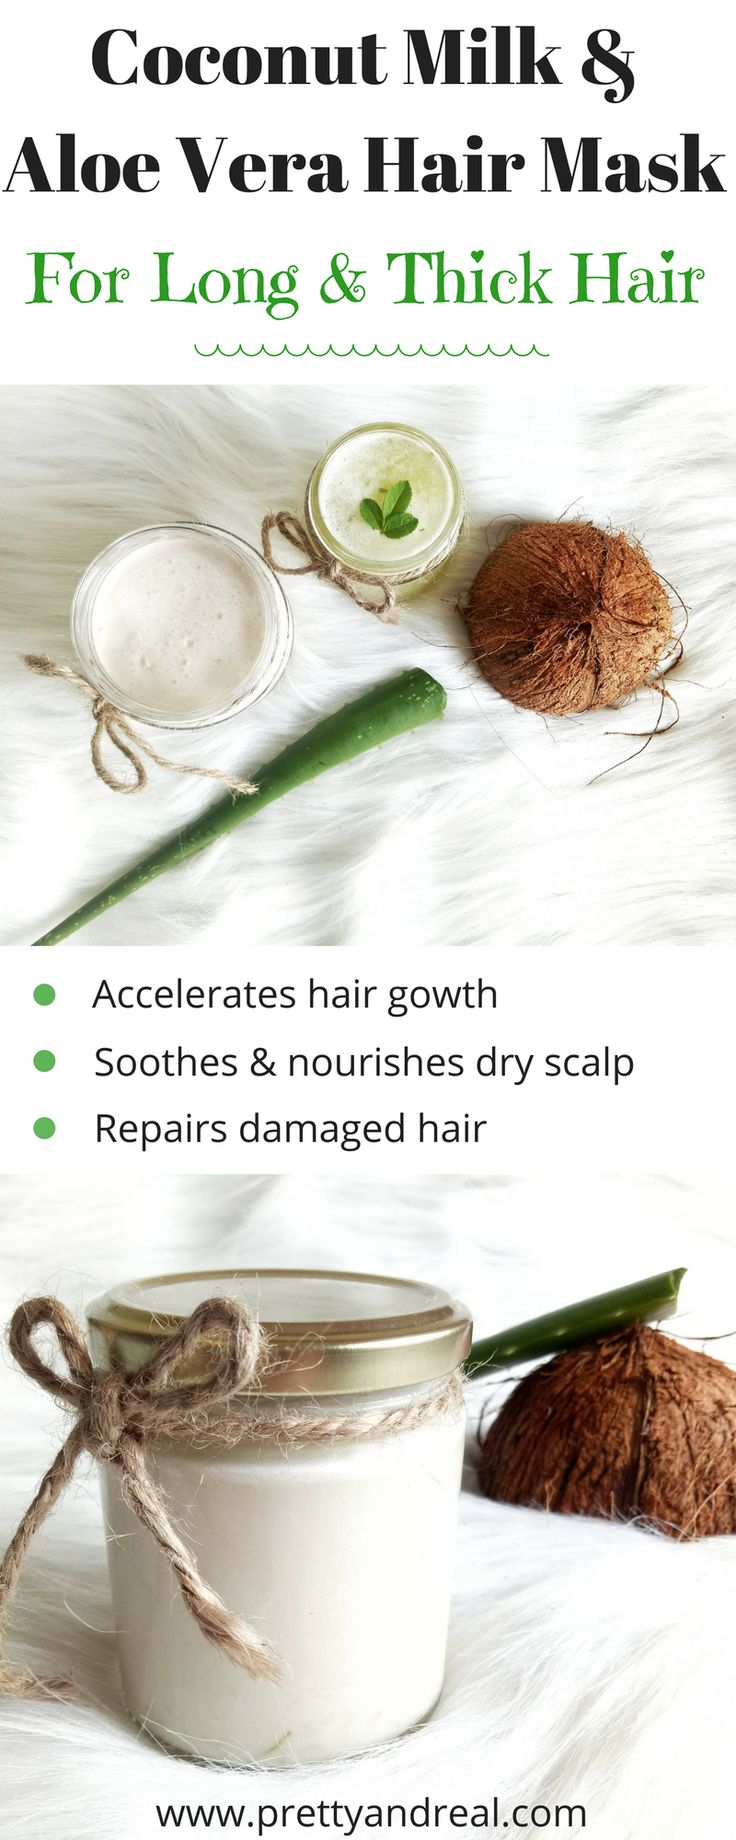 Coconut & Aloe are miraculous ingredients for your hair and skin. This Homemade Coconut Milk & Aloe Vera Hair Mask will give you long & nourished hair! #haircare #hairmask #coconutoil #aloevera